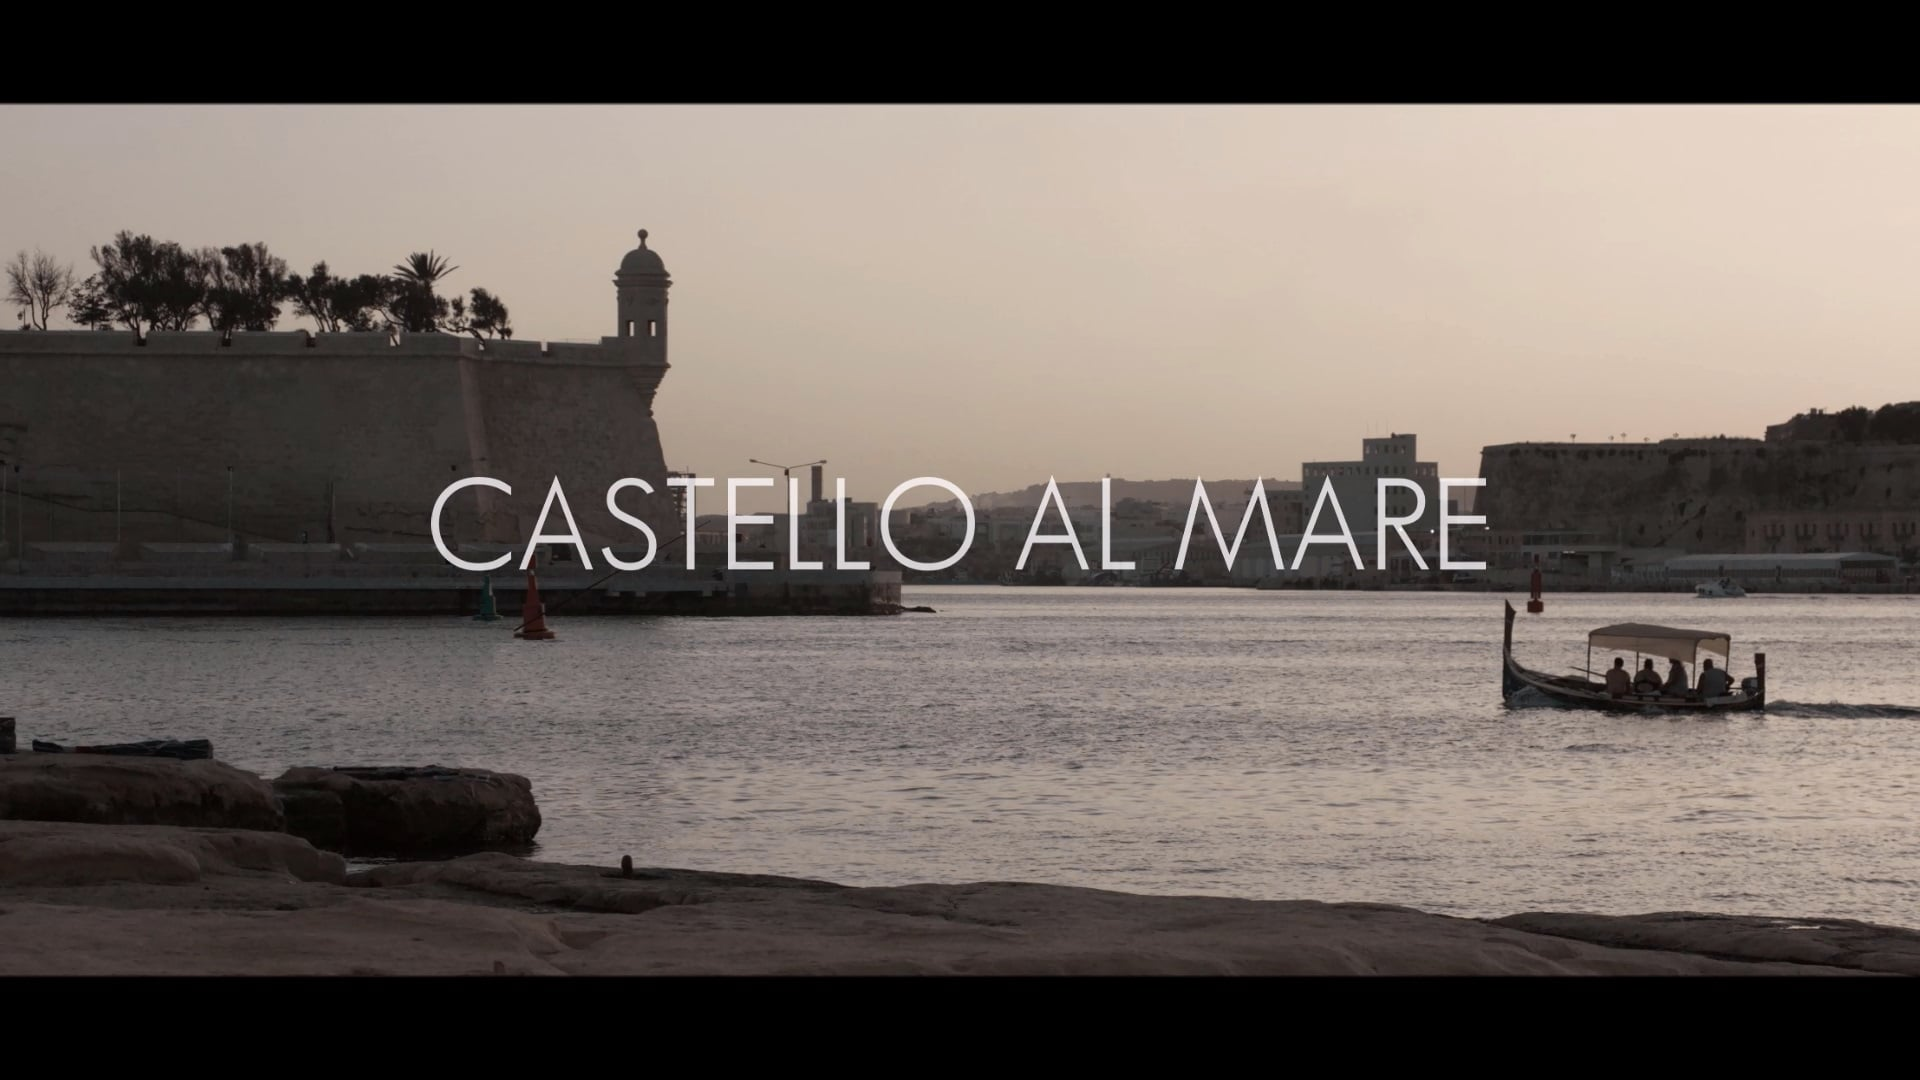 THE HEART OF MALTA: A REFLECTION OF THE PAST